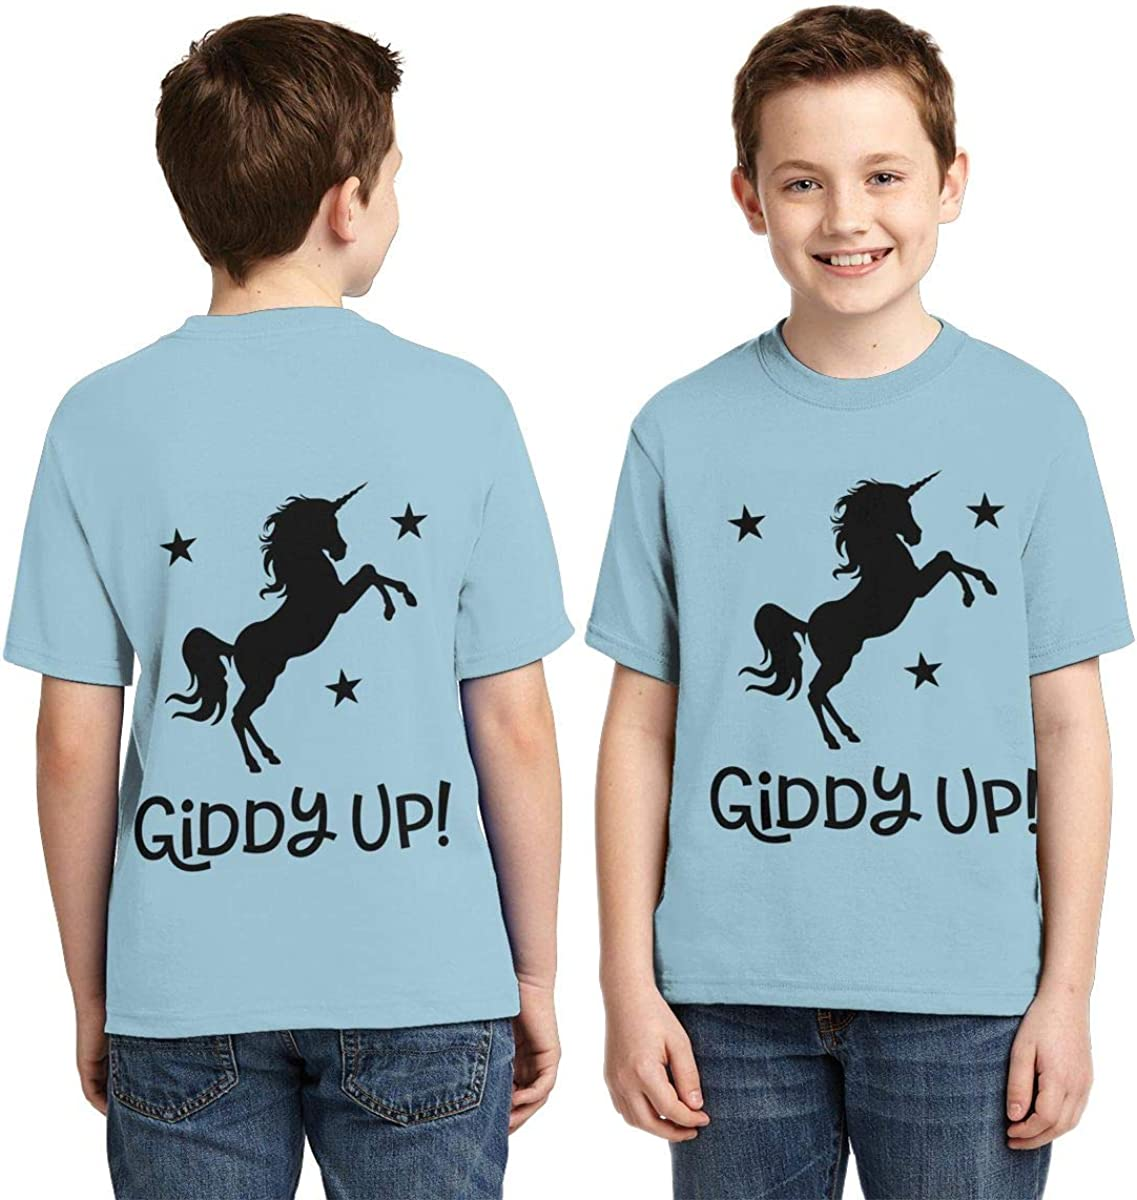 Youth T-Shirts Giddy Up Unicorn Full Printed Short Sleeve Crew Neck Tees Summer Tops for Boys